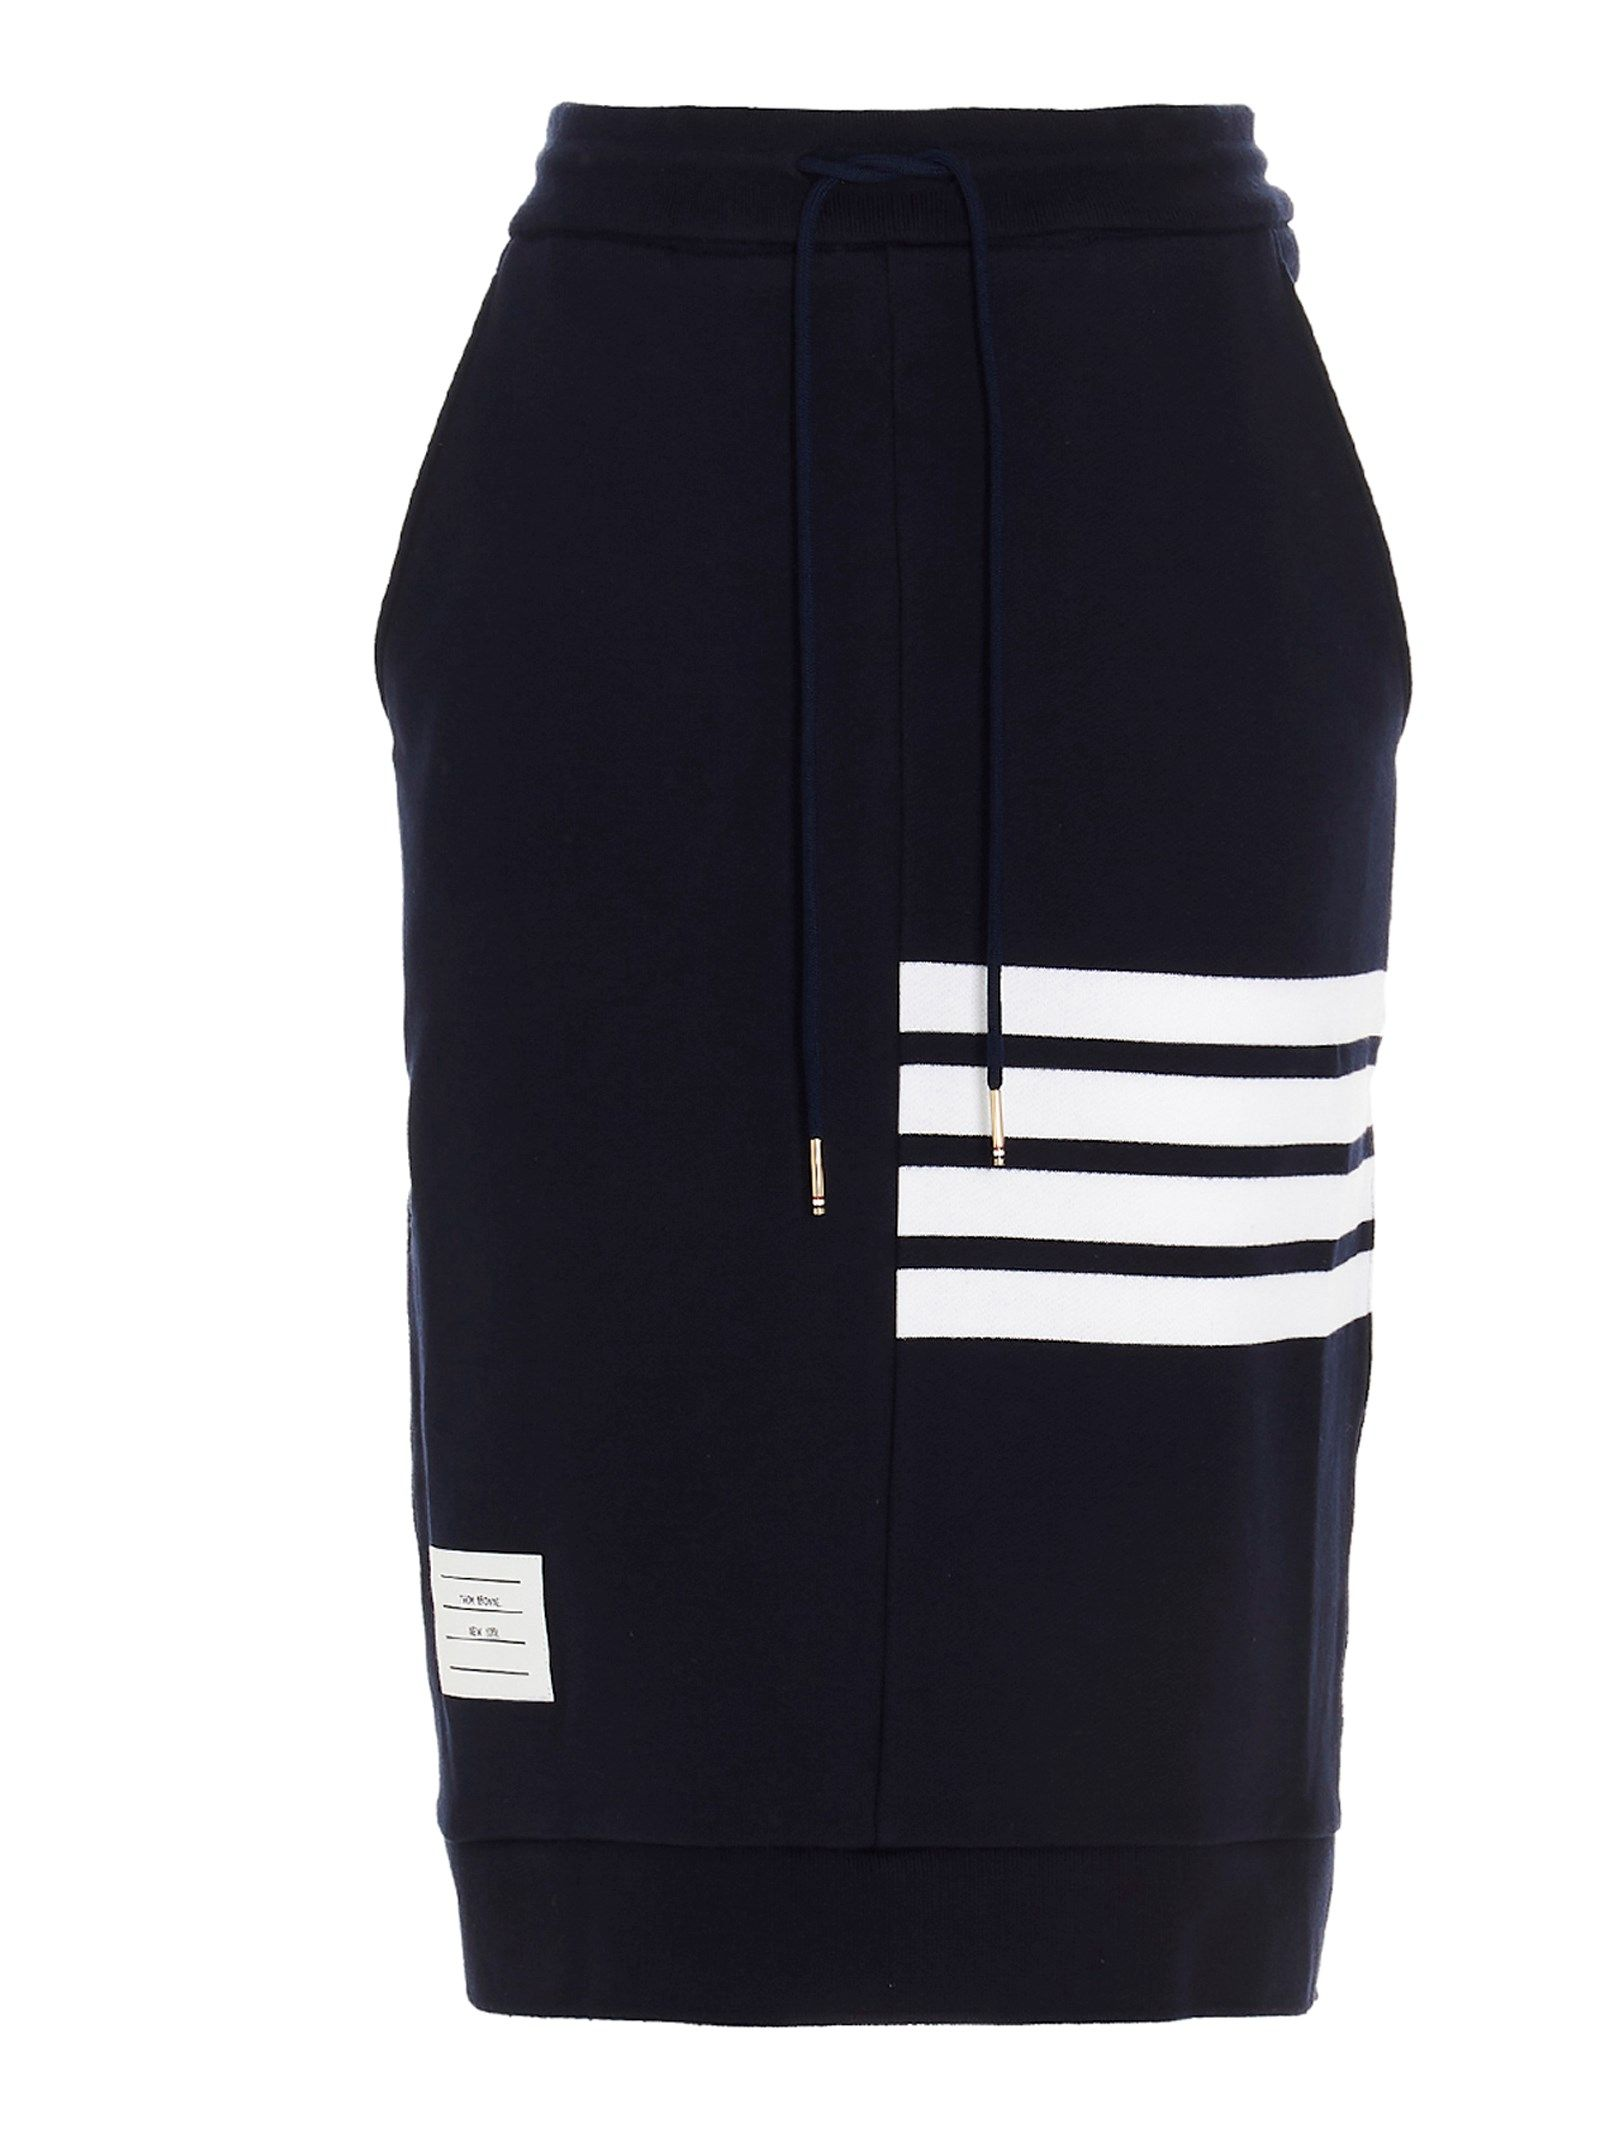 Thom Browne THOM BROWNE WOMEN'S FJK008A00535415 BLUE OTHER MATERIALS SKIRT